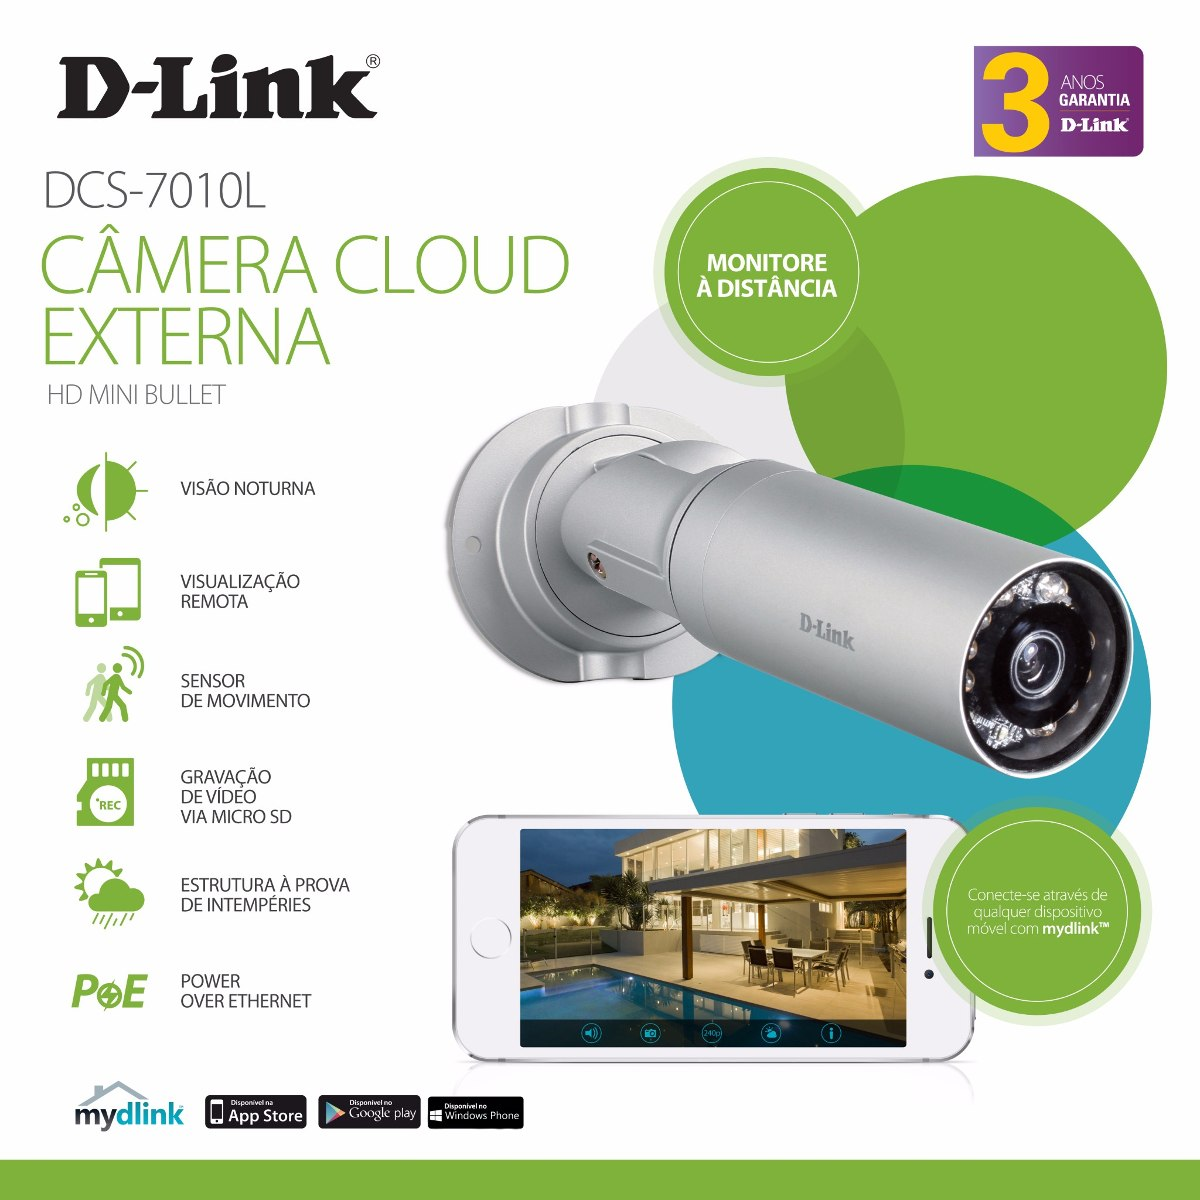 D-Link DCS-7010L Camera Windows 8